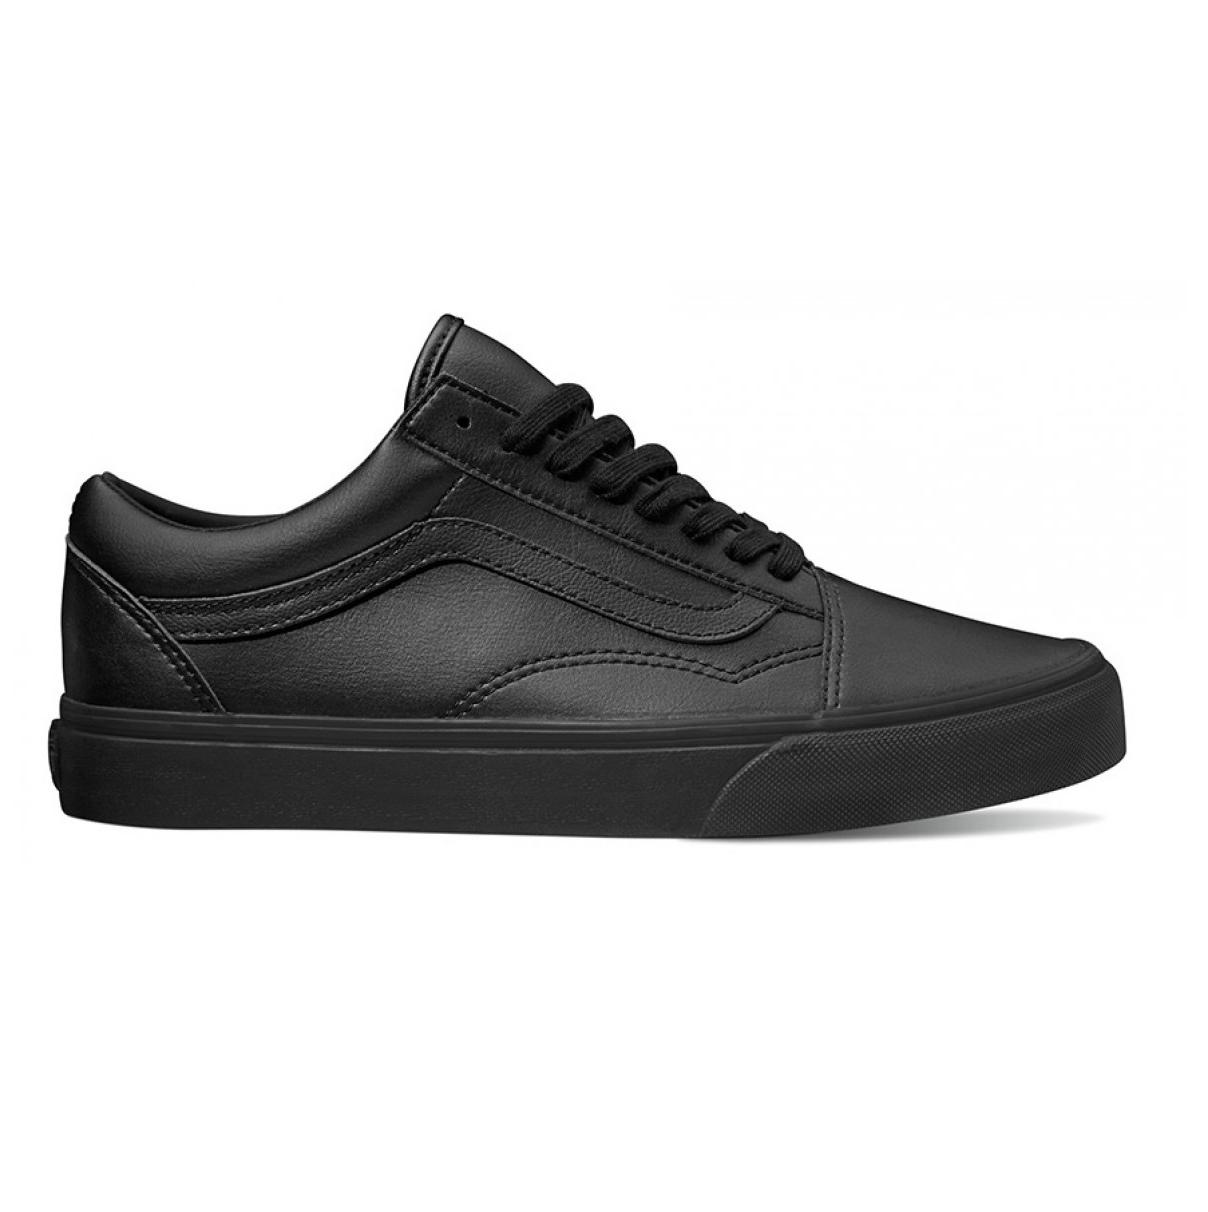 f7edcfcc2fbaf0 Vans Black Mono VN0A38G1PXP Old Skool Classic Tumble Lace up Shoes (Unisex)  - 8207